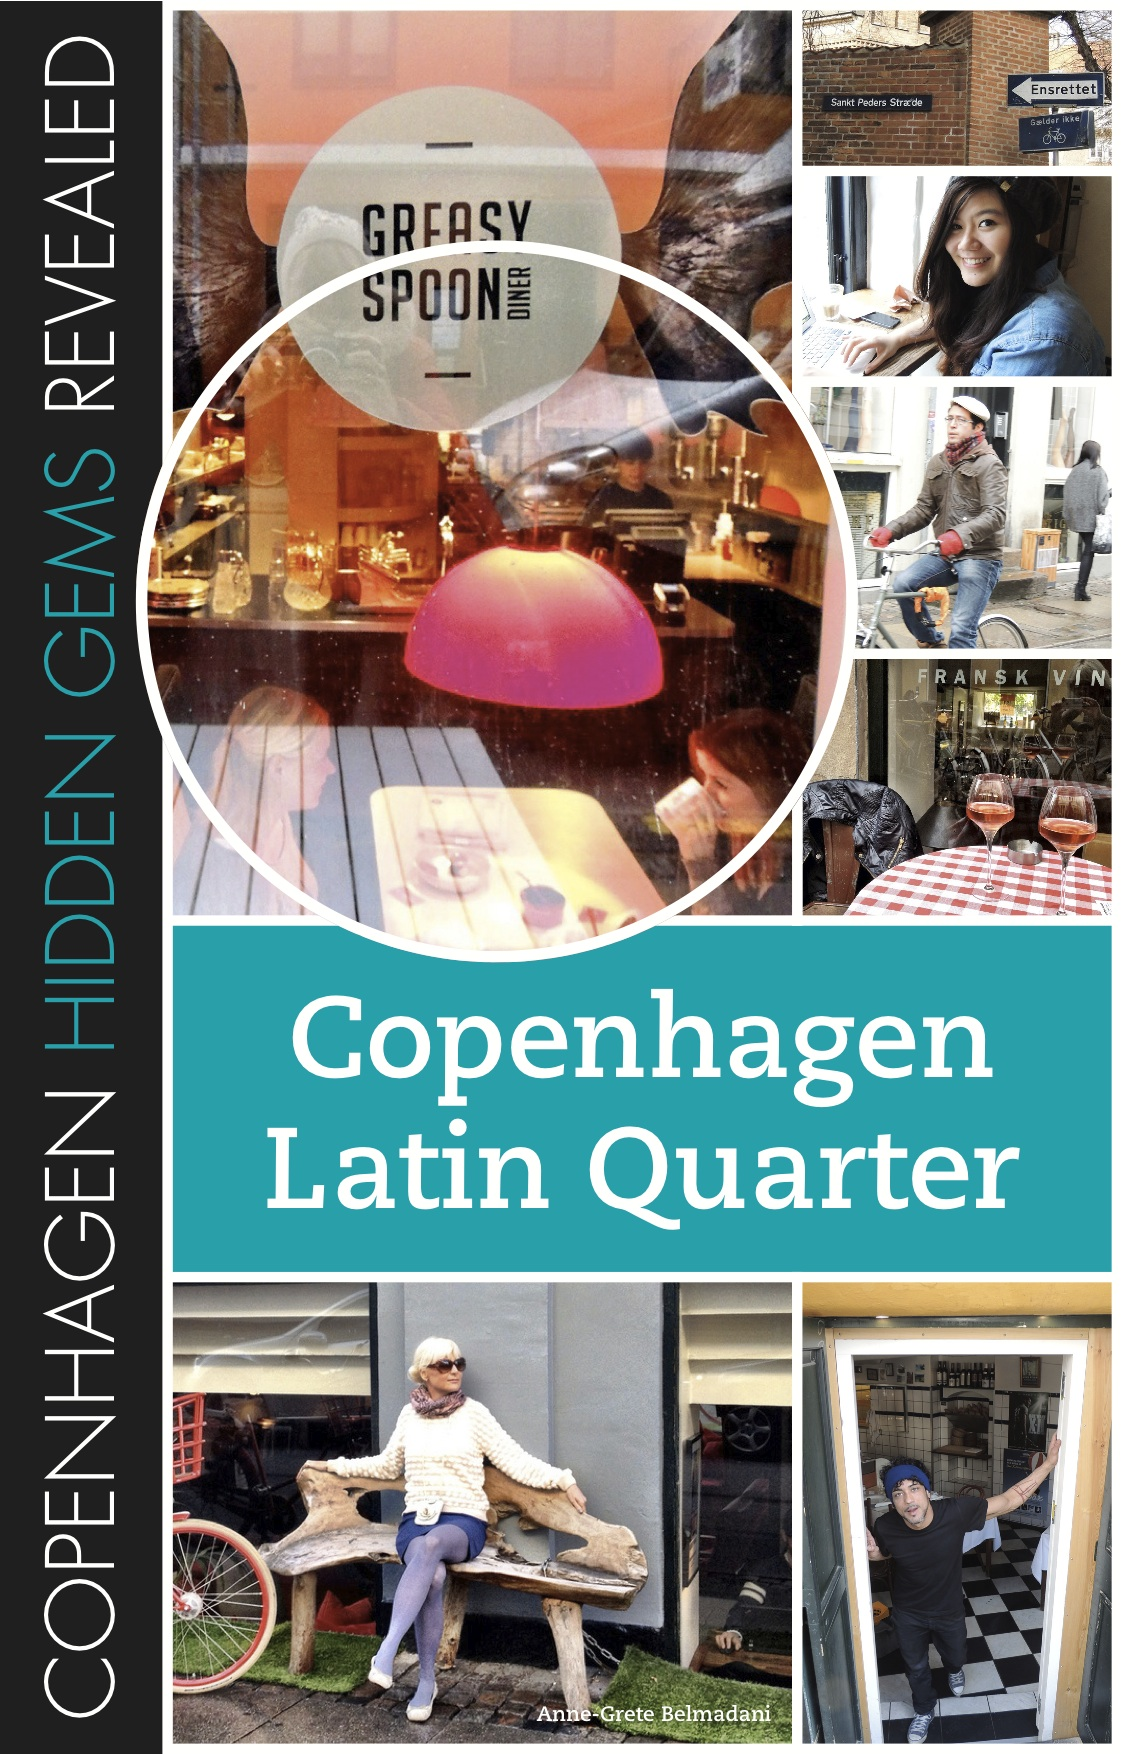 Potential cover 2 for my new ebook #CopenhagenHiddenGems